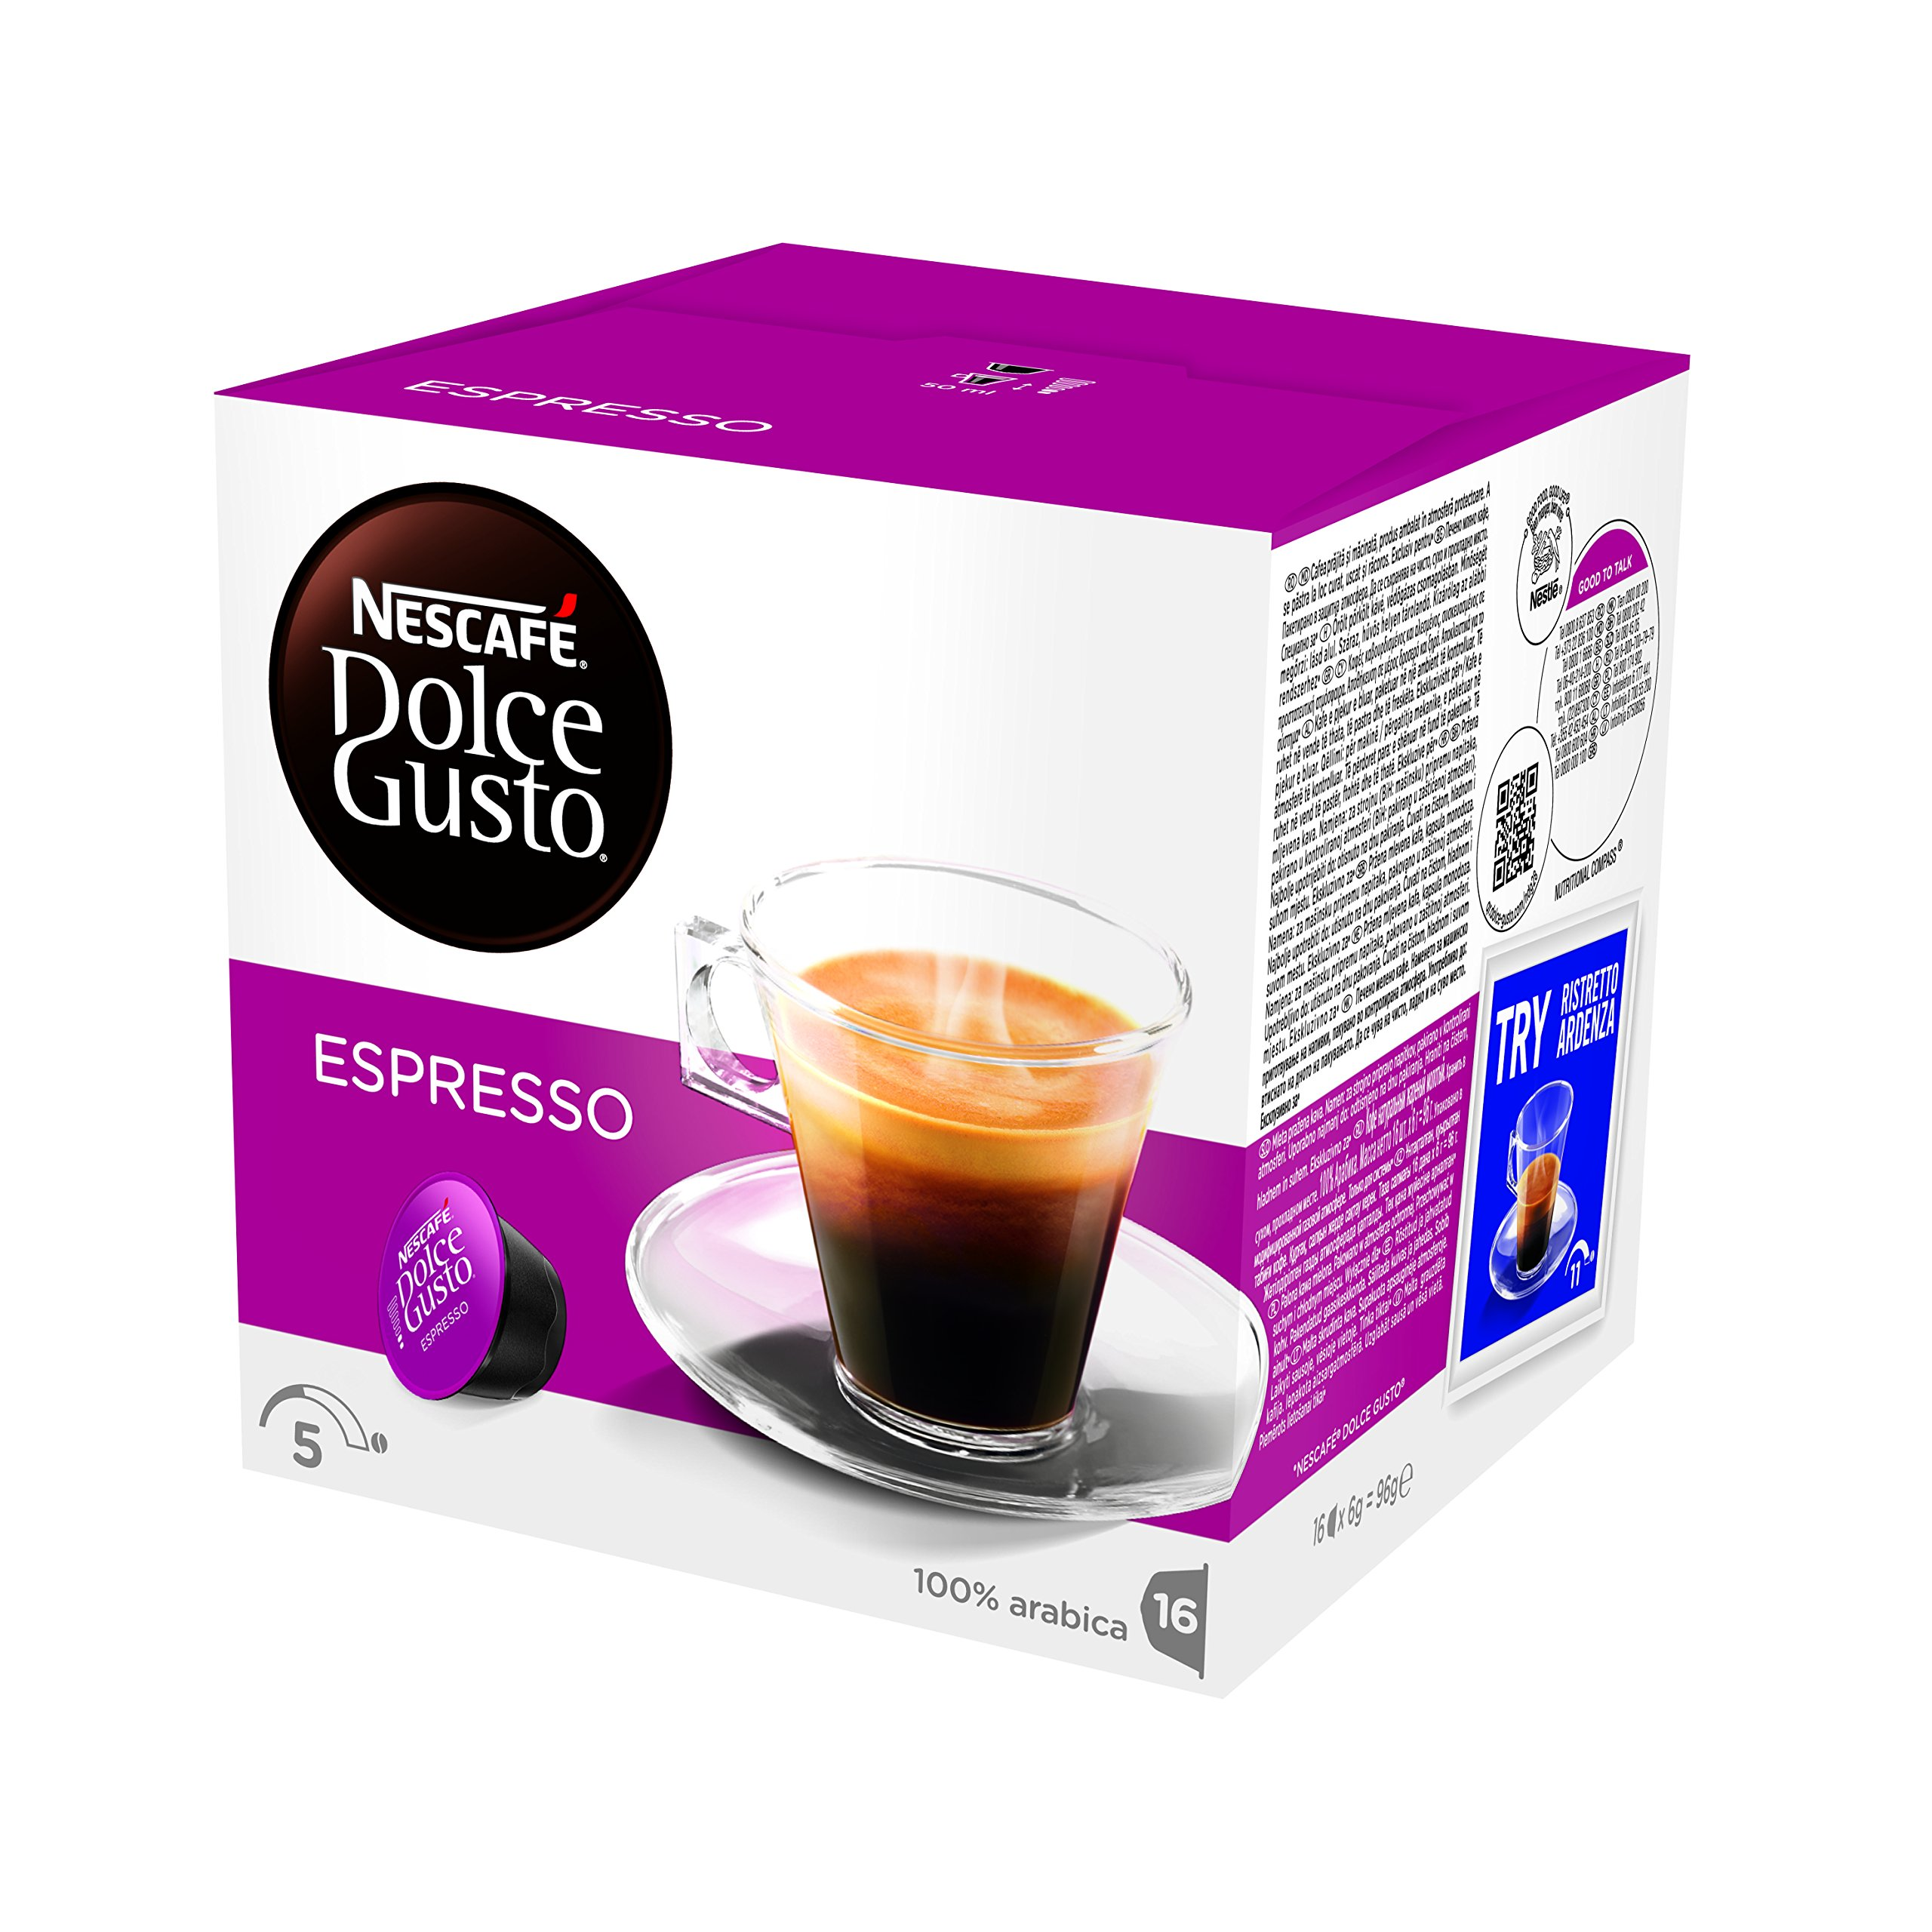 Nescafé Dolce Gusto Espresso coffee pods and capsules (a nutty notes coffee with aromas of nutty)